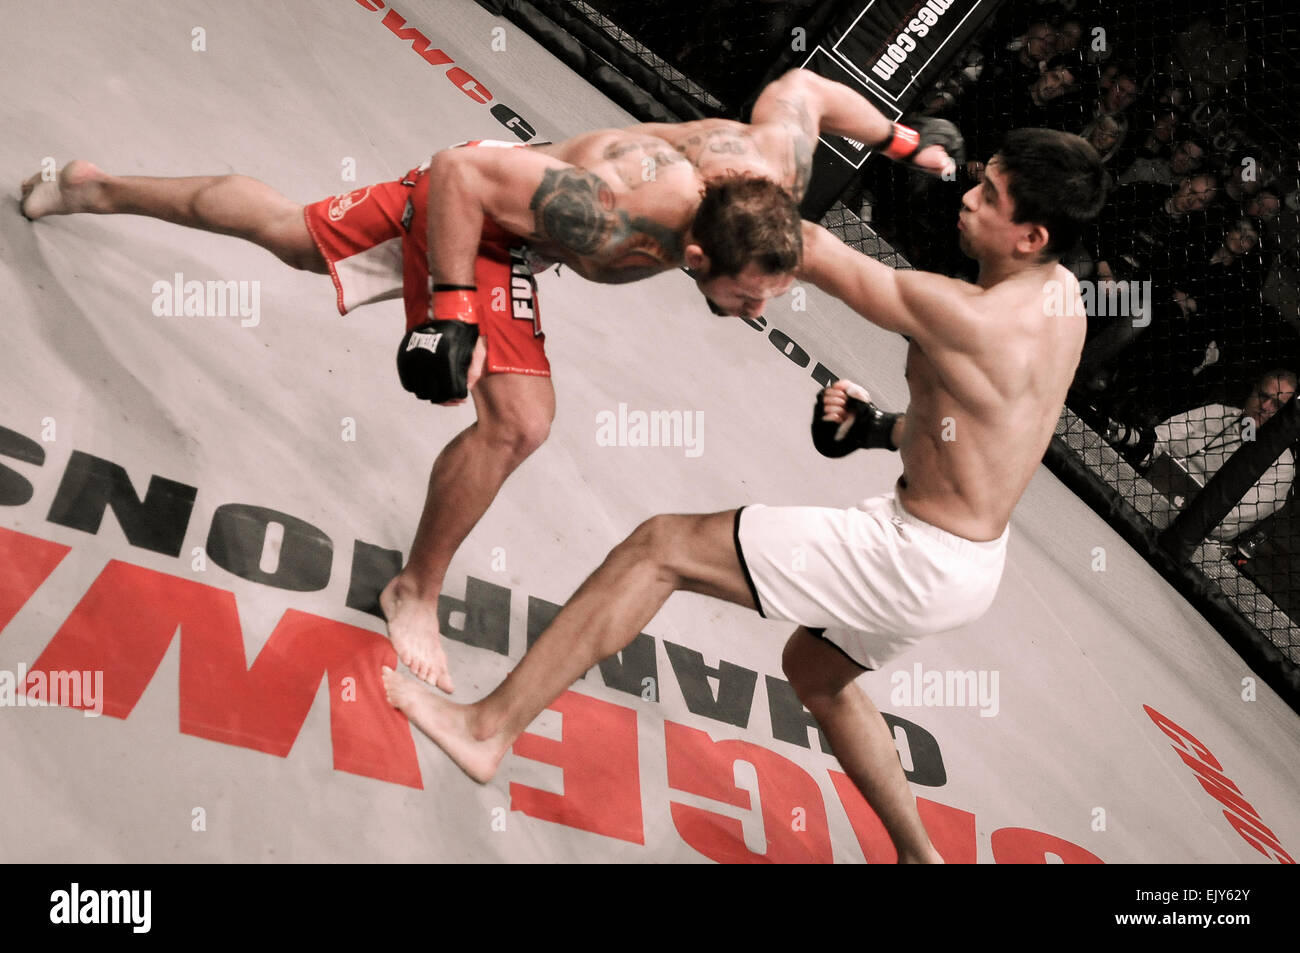 UFC MMA star Rich Clementi punches his opponent - Stock Image